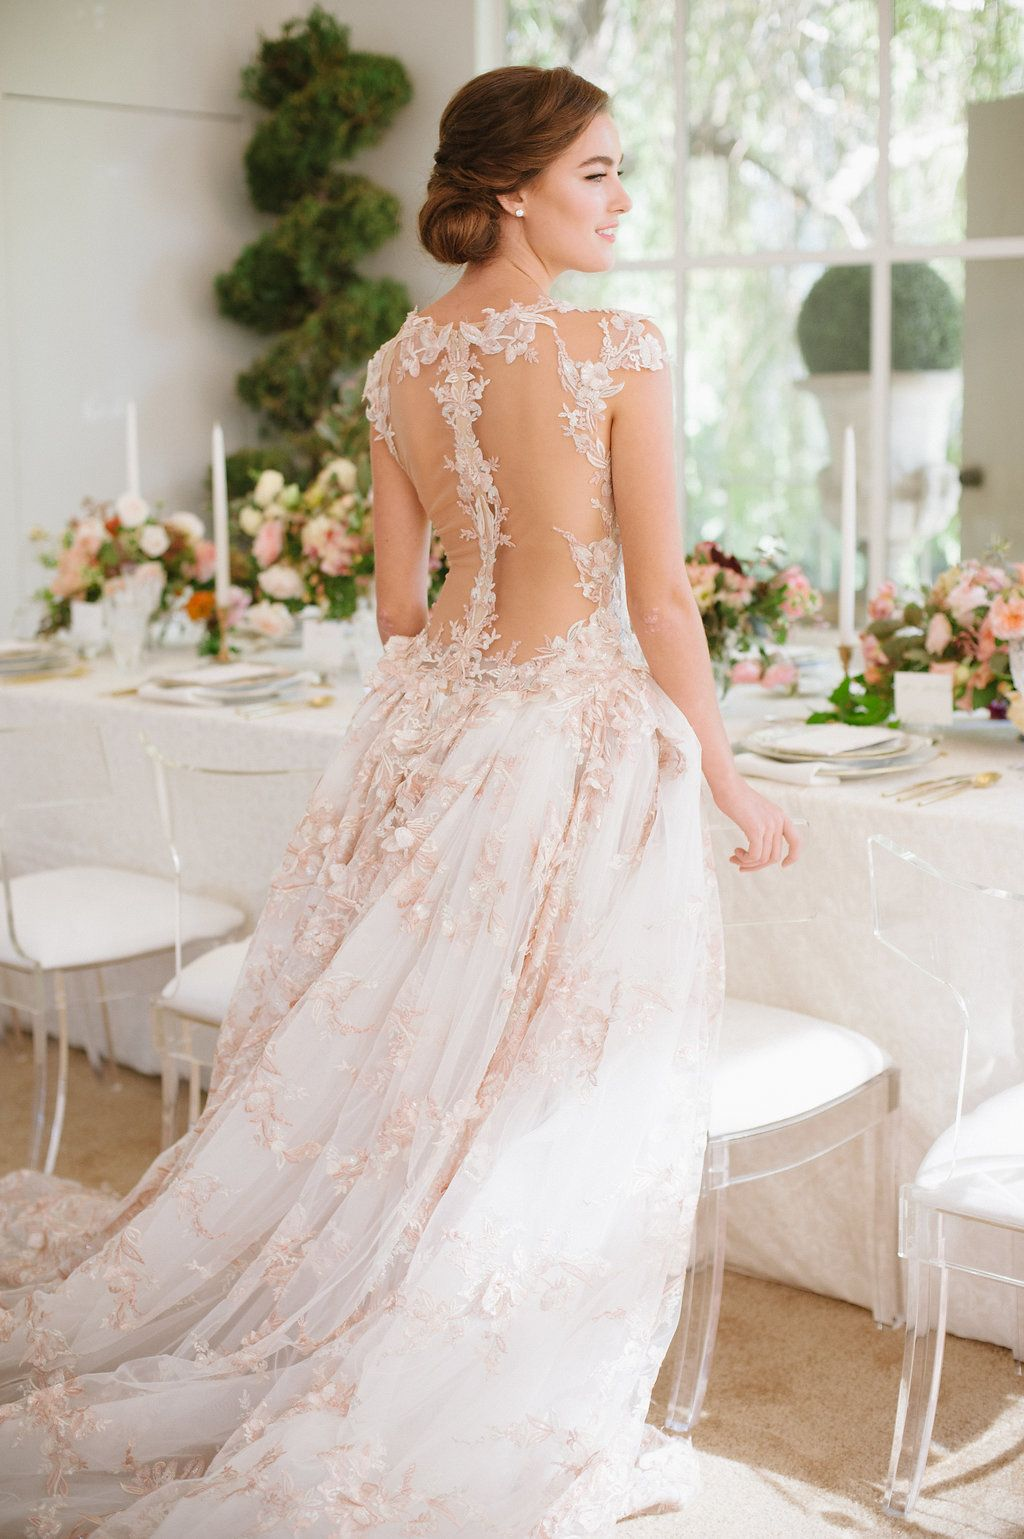 Blush Wedding Dress Galia Lahav Israel Designer Fl Lace Gown With Lique Open Back Hair Updo Lily Rose